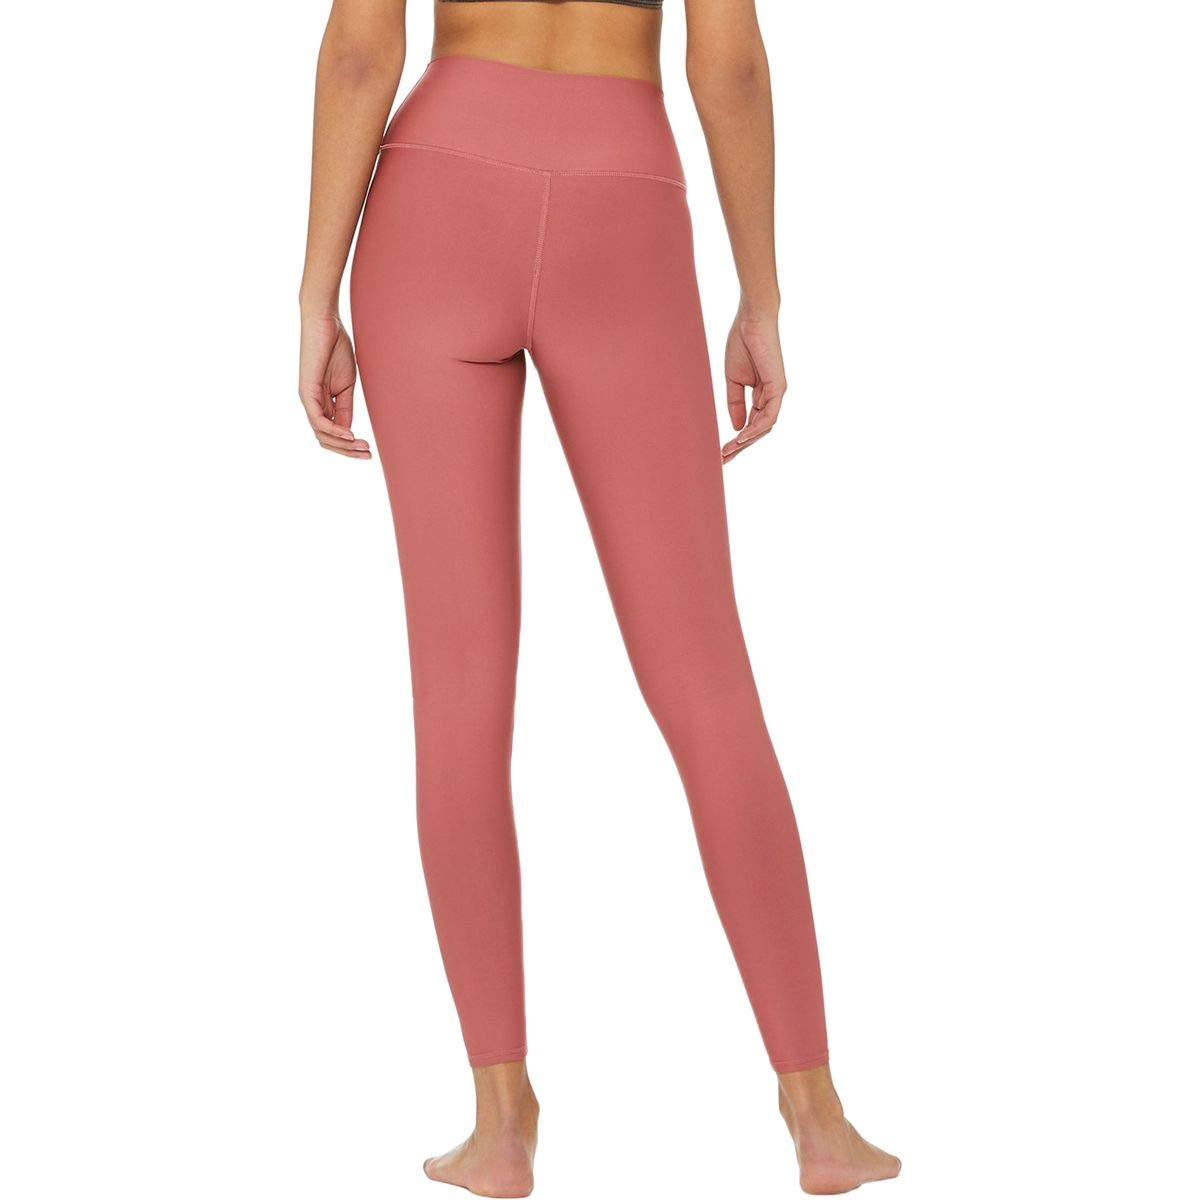 Alo Yoga High-Waist Airlift Legging - Women's Rosewood, M by Alo Yoga (Image #2)